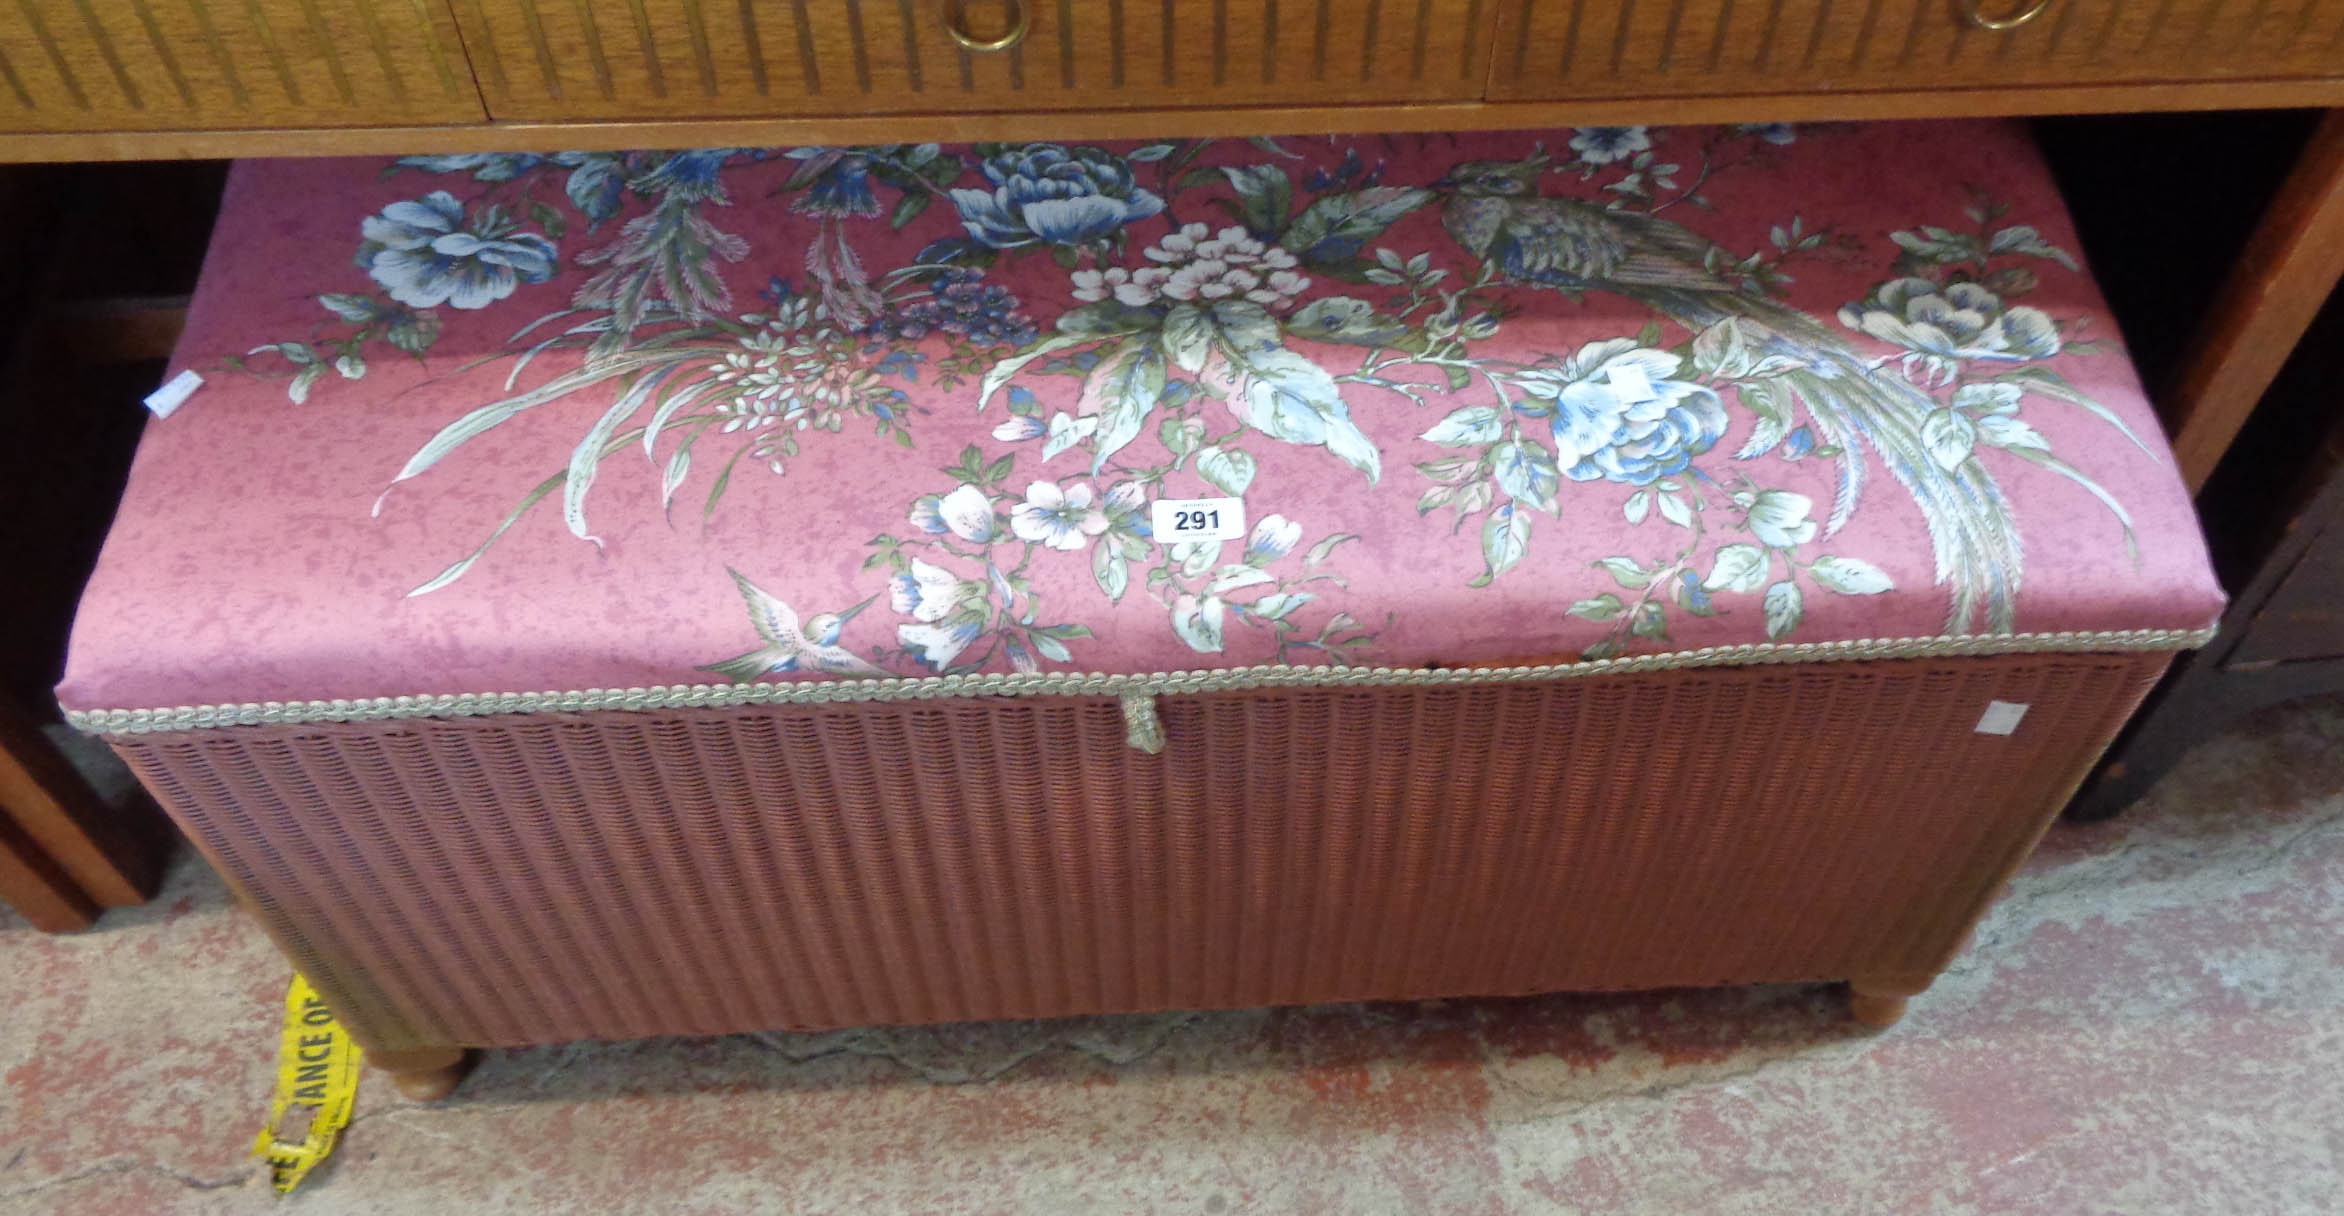 A vintage Lloyd Loom ottoman with original upholstery and old rose coloured finish, set on short